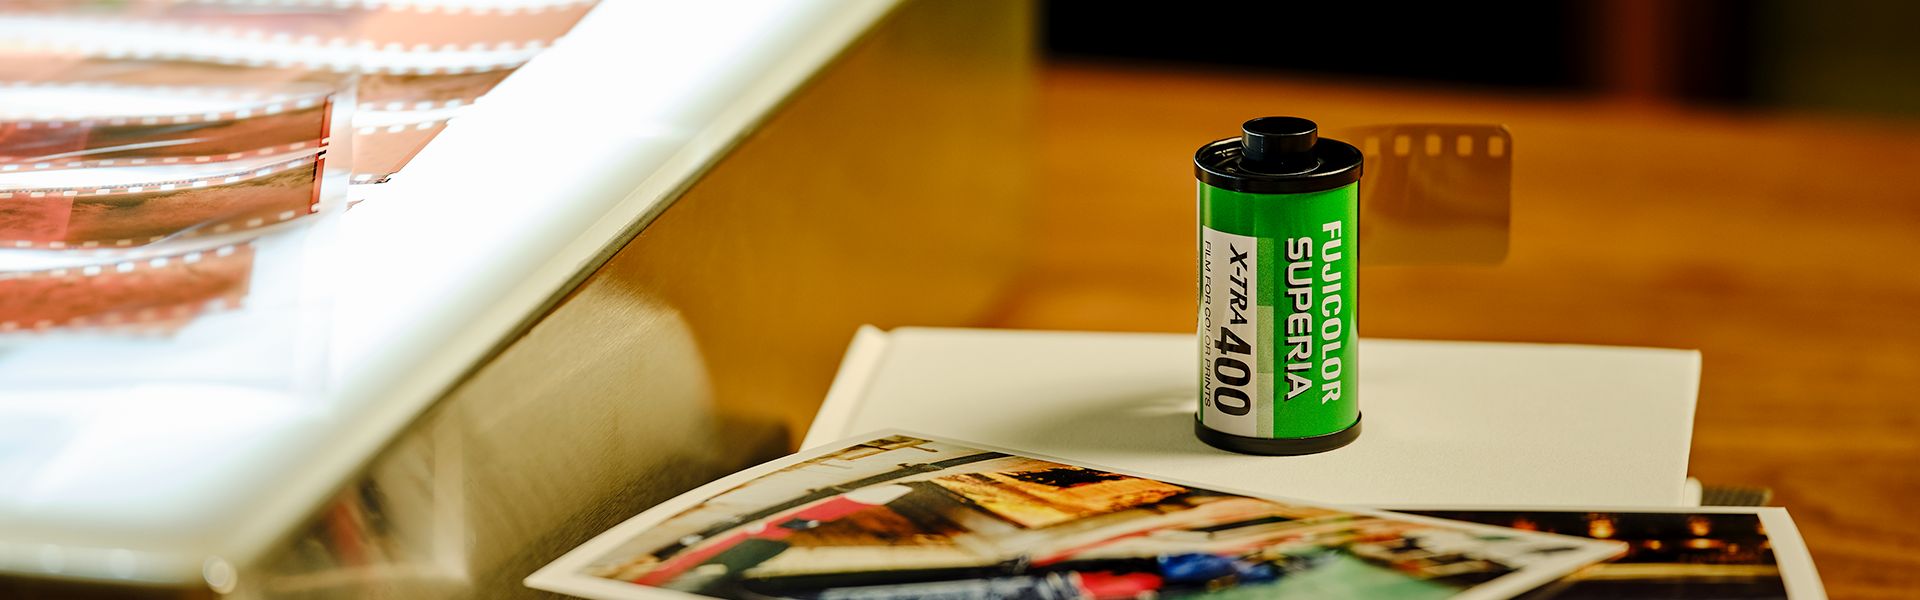 [photo] Fujicolor Superia X-Tra 400 film on a white table book and sample print out and film negatives on the side